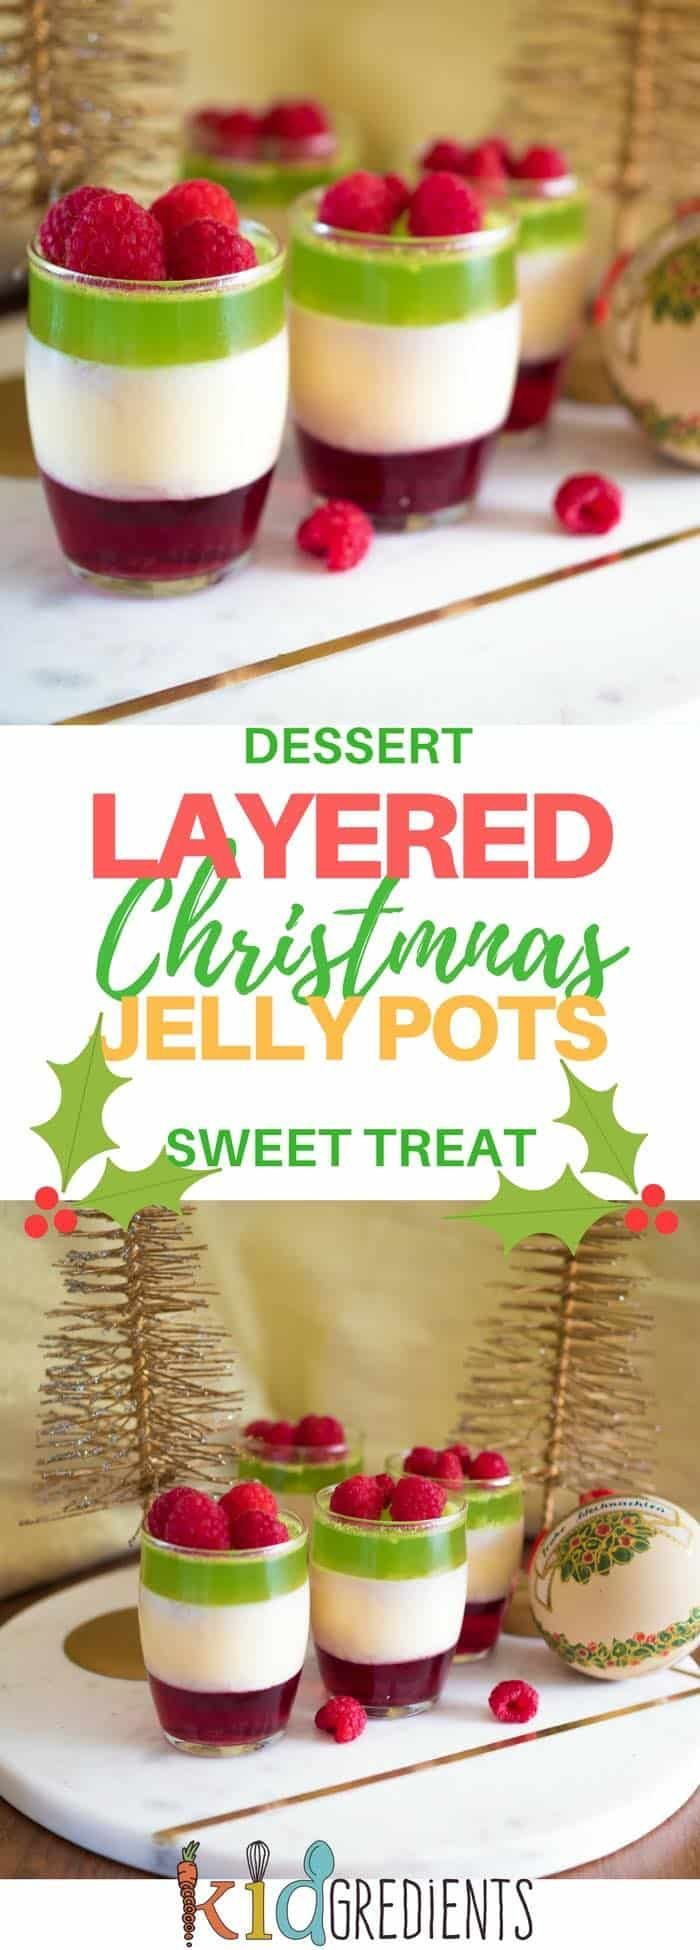 Christmas layered jelly pots to make your Christmas desserts just a little prettier! Super yummy and easy to make. Kid friendly and oh so sweet! #kidsfood #dessert #sweettreat #jelly #christmas